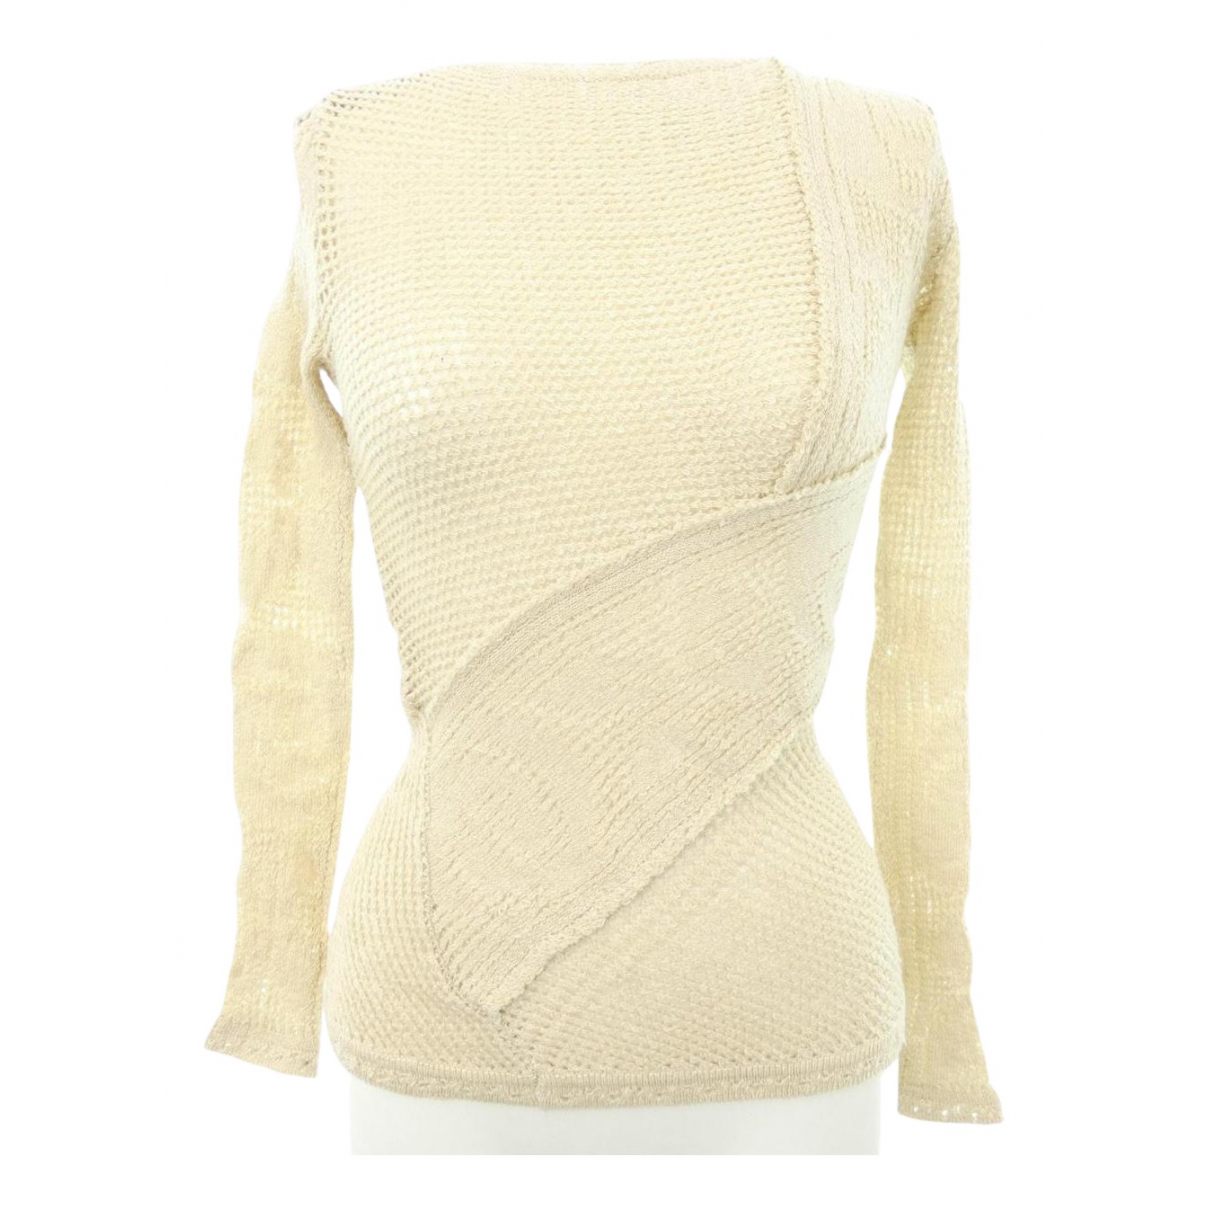 Balenciaga N Yellow Knitwear for Women 34 FR